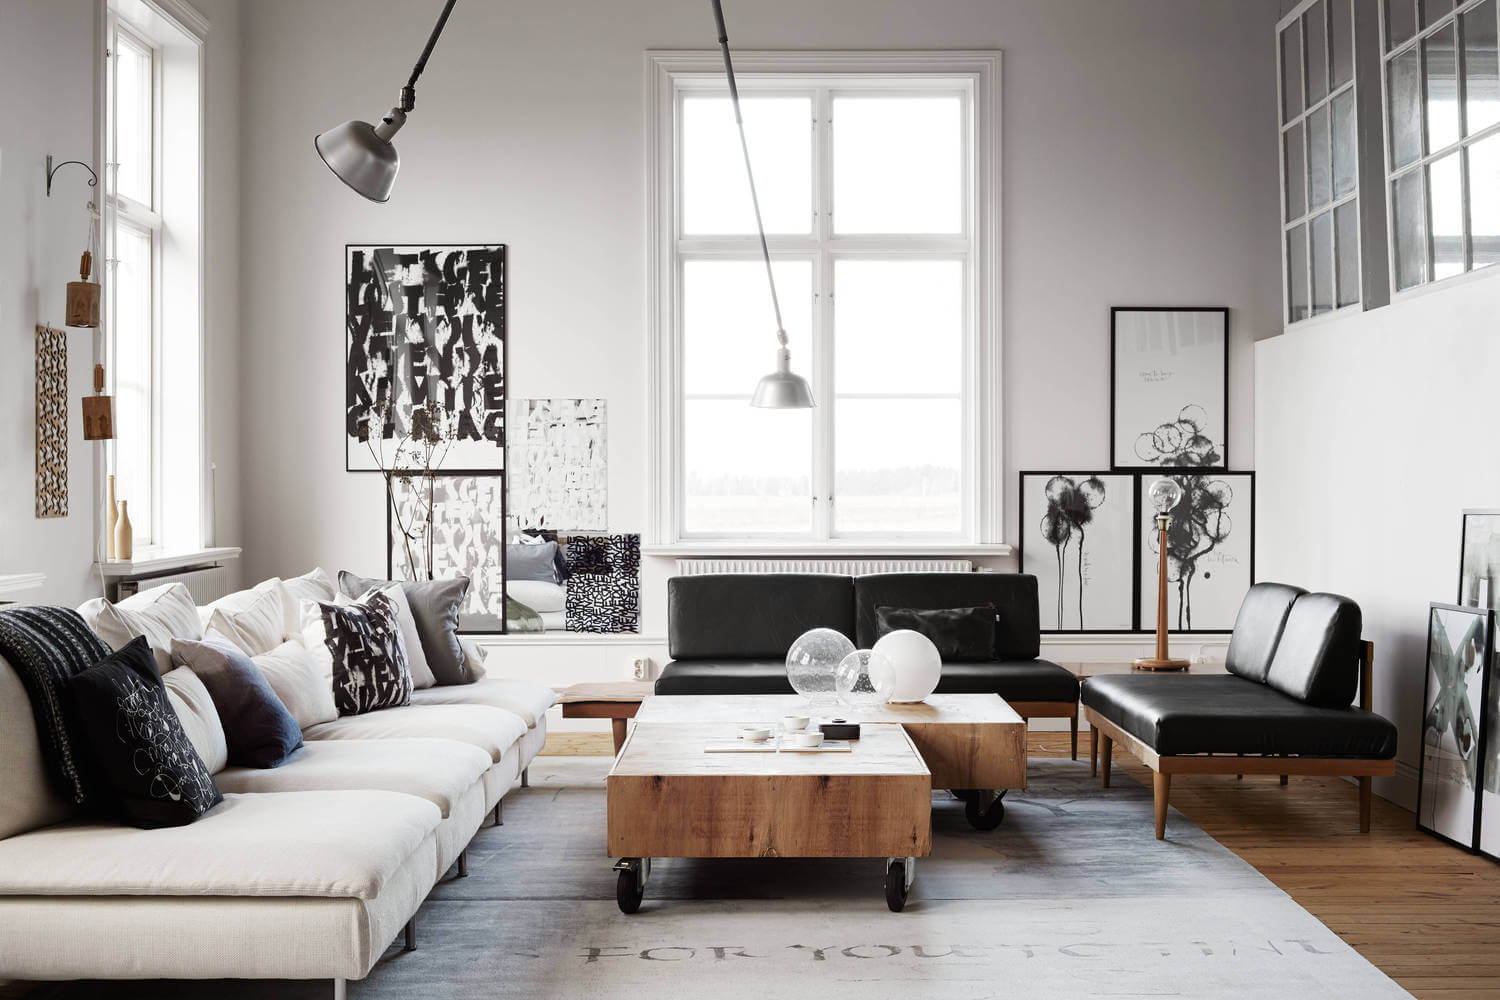 20 Modern Scandinavian Furniture Design Trends 2016